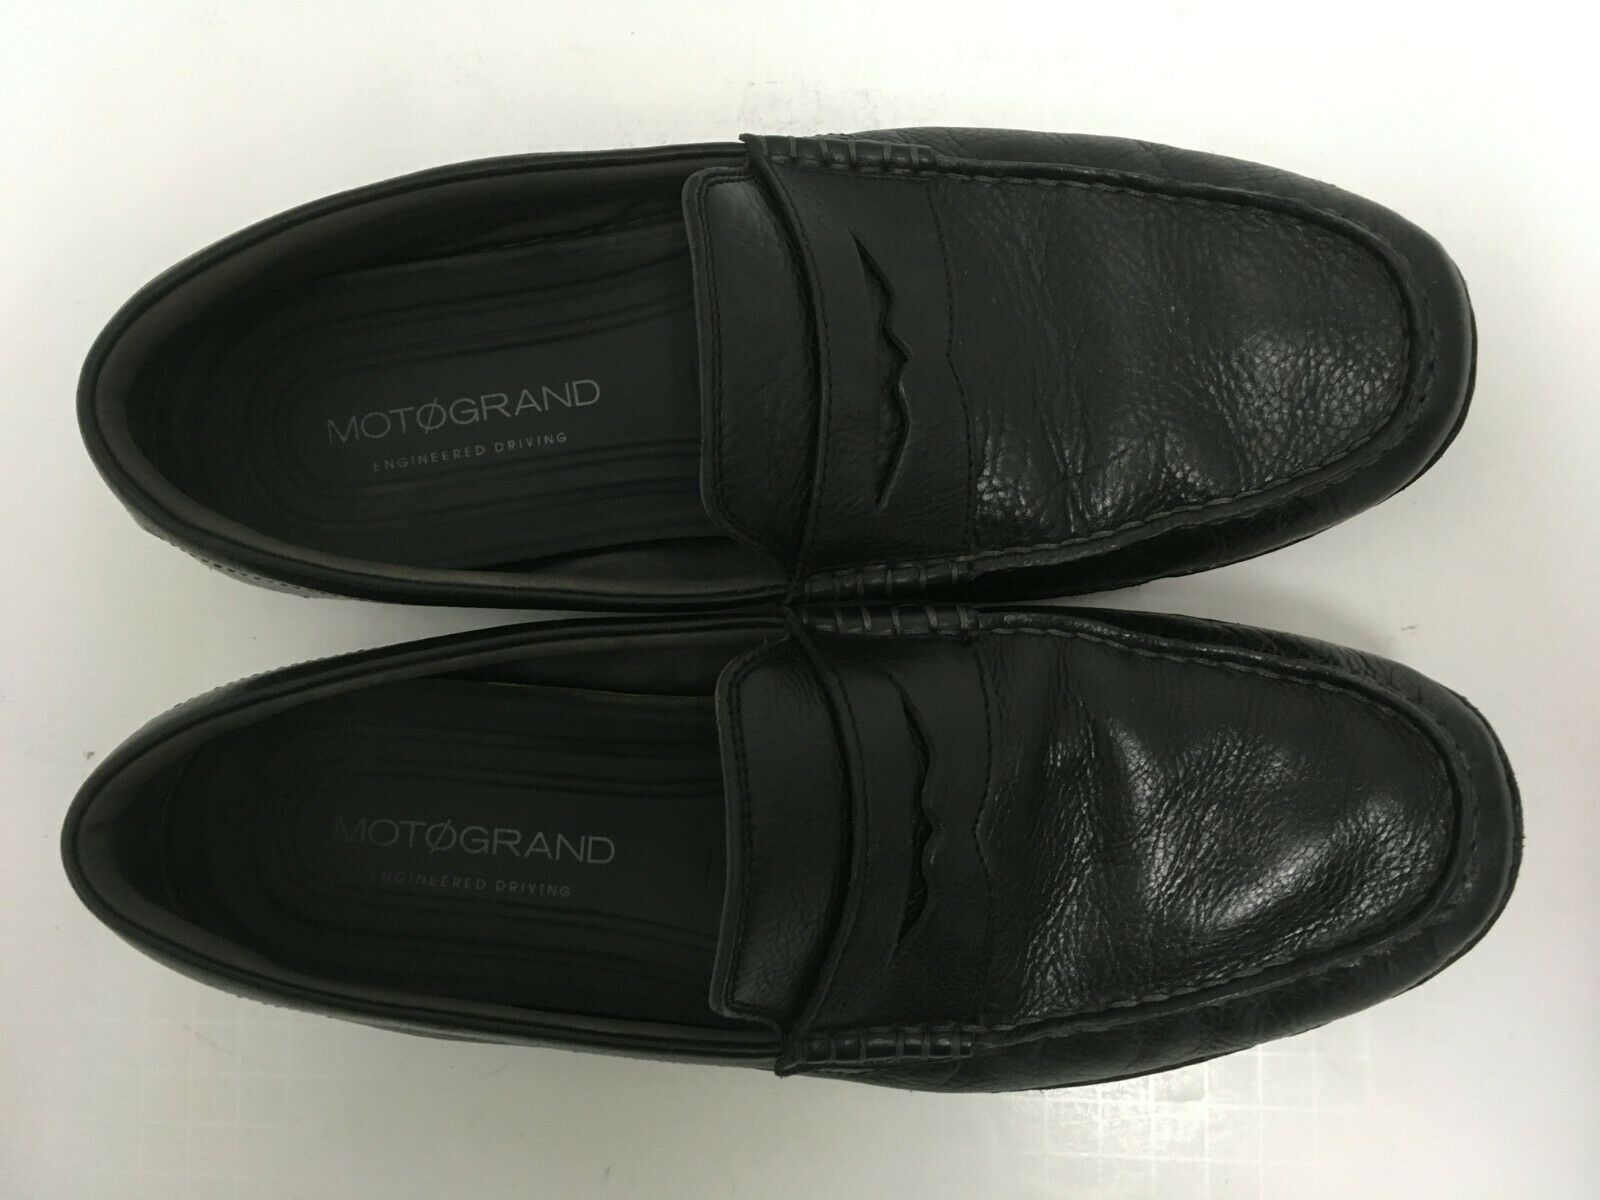 Cole Haan Men's MOTOGRAND Penny Loafer Black Leather Driving Shoes Size 11M GUC image 8